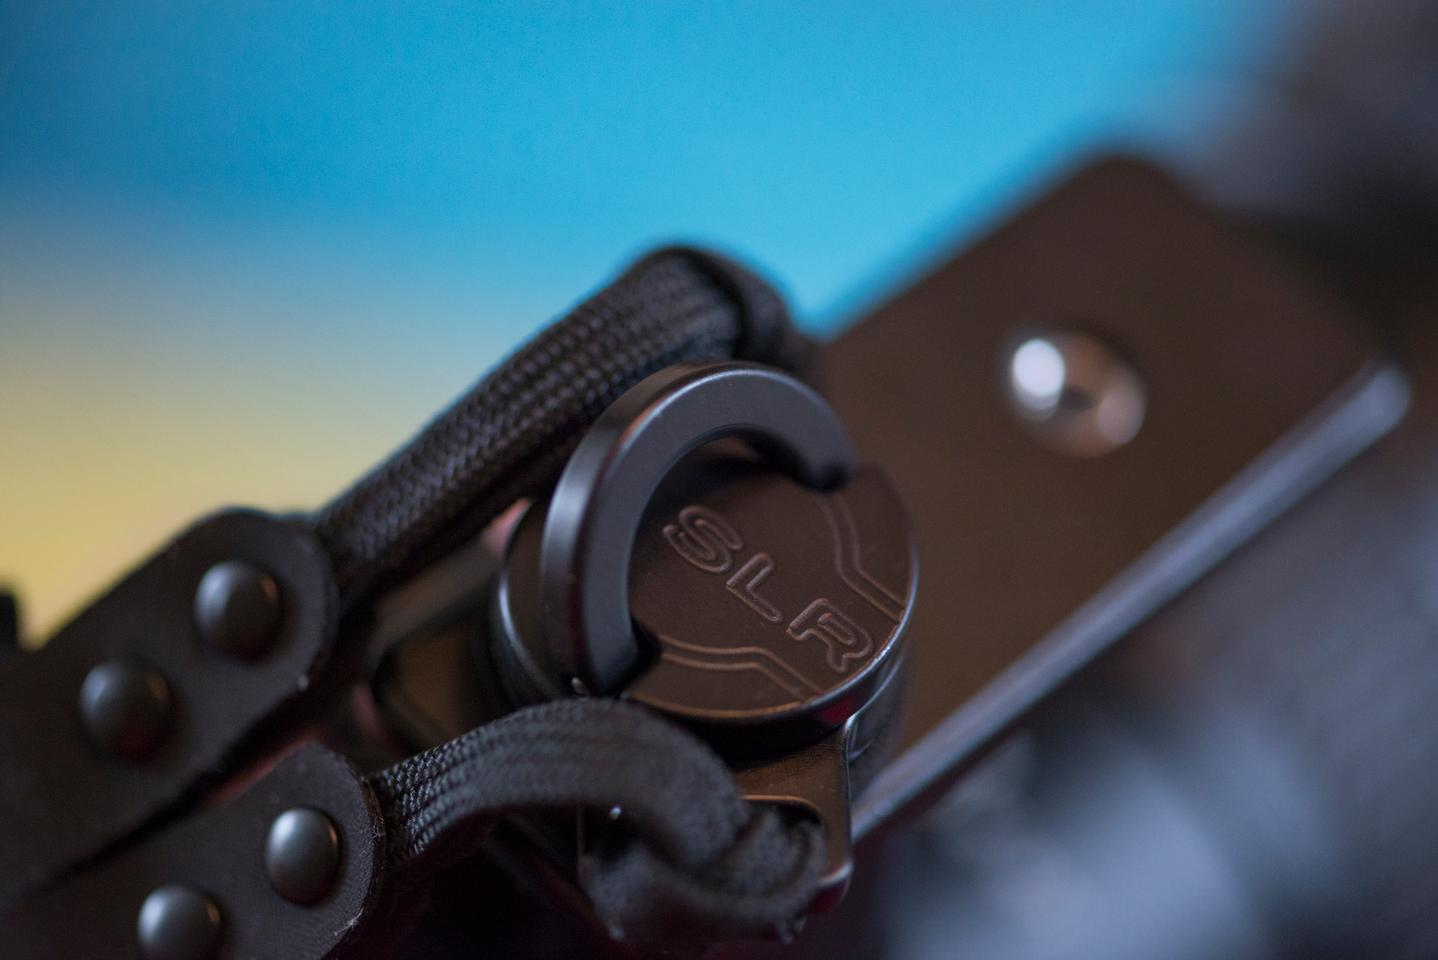 The Custom SLR Dual Camera Strap attaches to your camera or lens using a C-Loop Mount which screws into the tripod socket